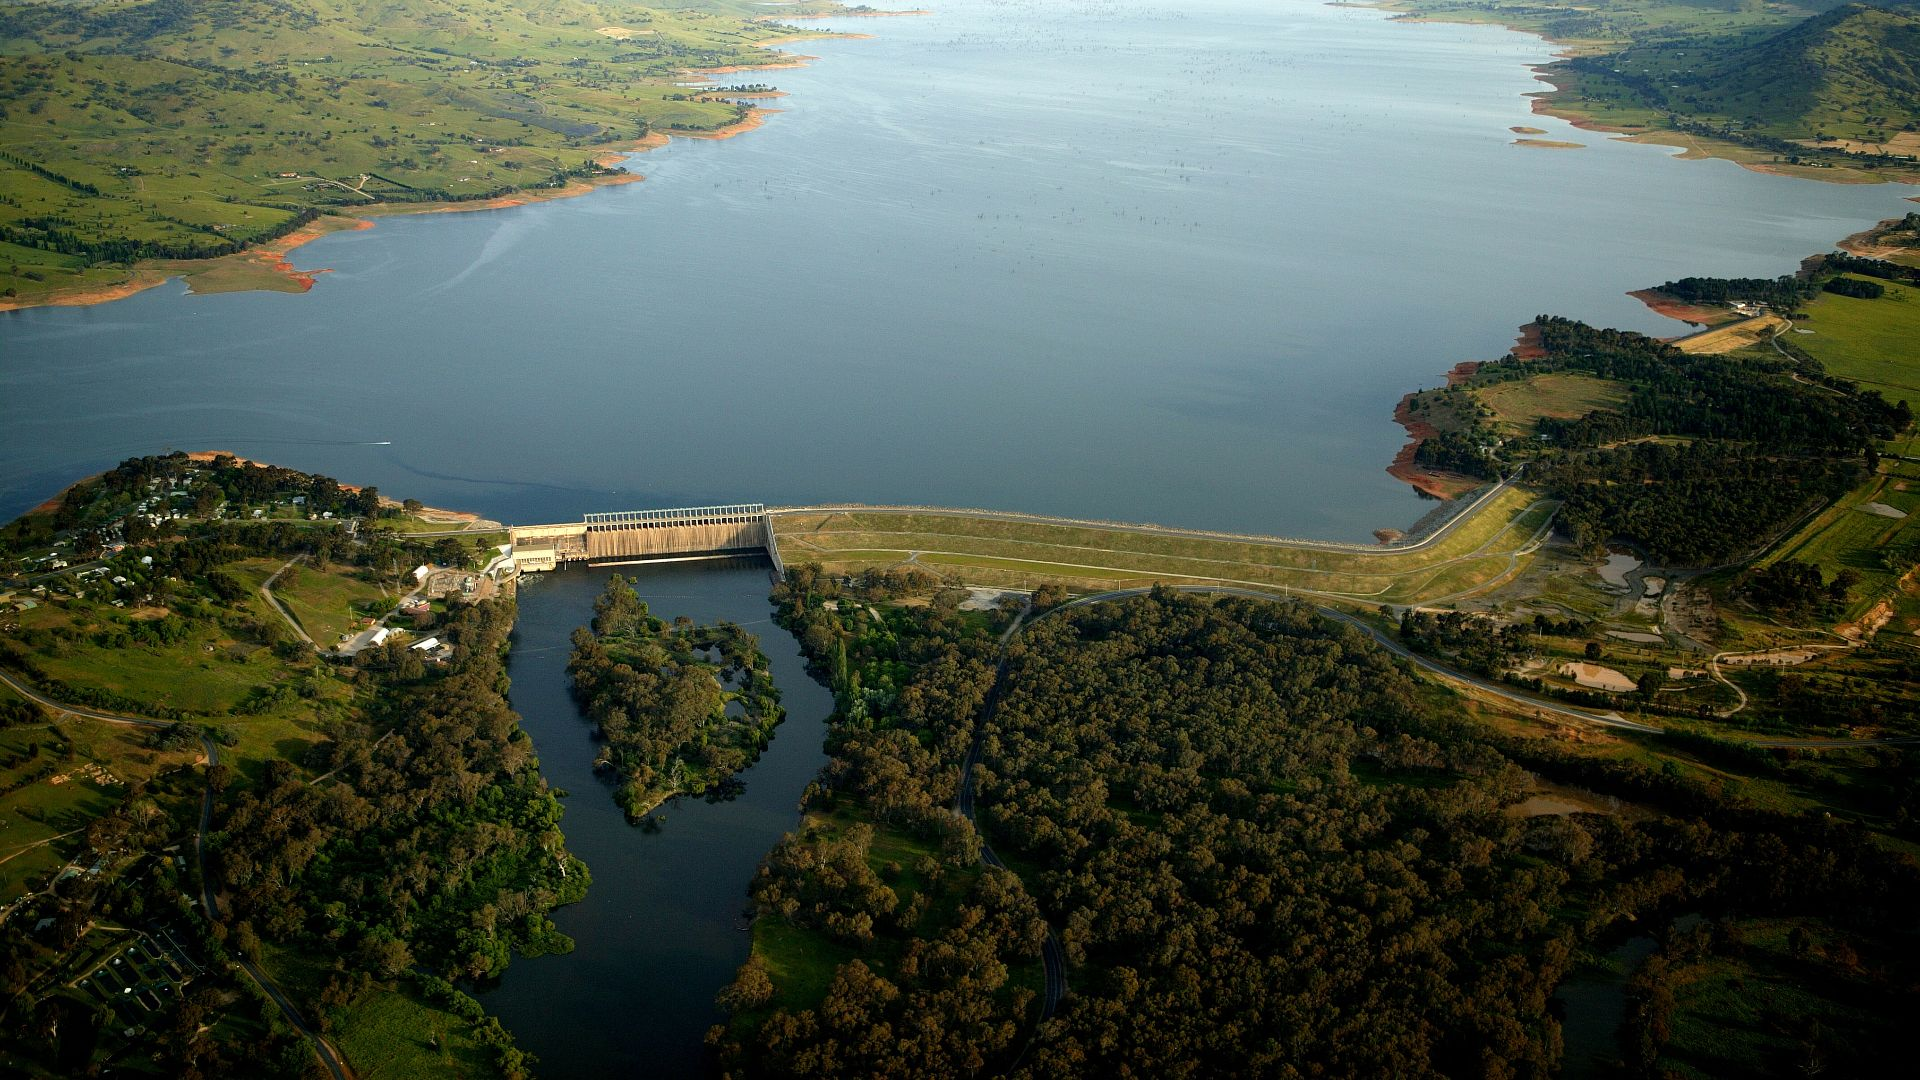 Charles Sturt to co-host event celebrating 100 years of the Hume Dam